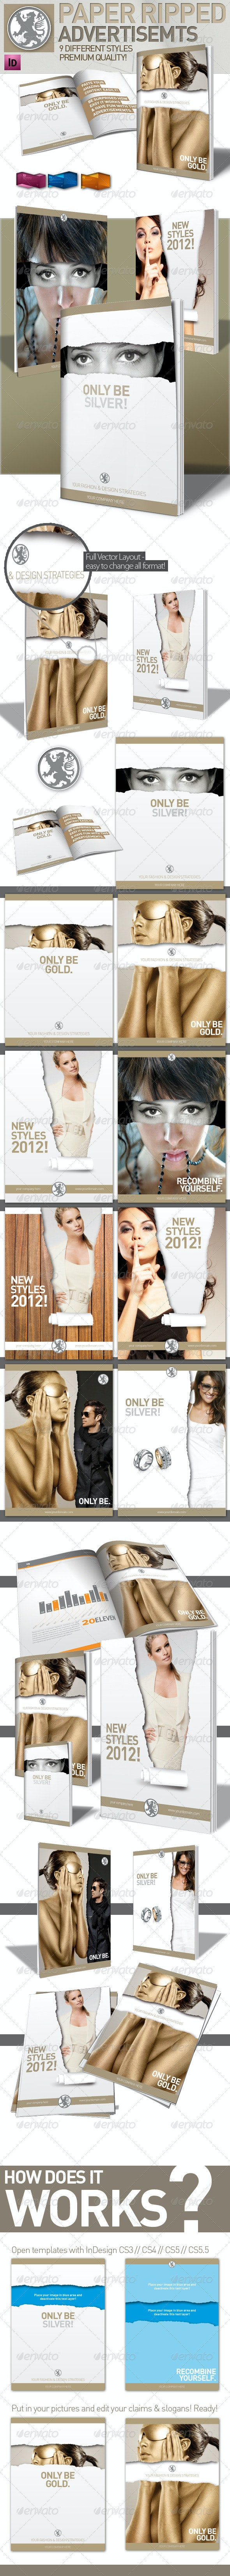 InDesign Magazine Paper Ripped Ad // 9 Variations - Magazines Print Templates